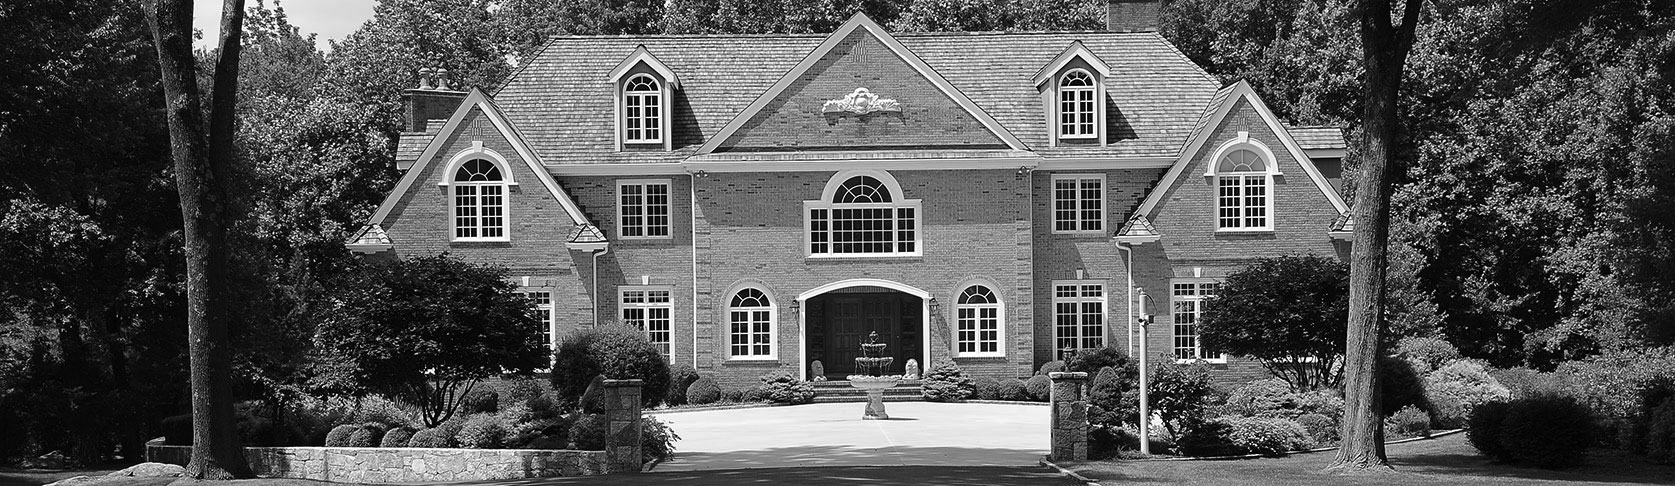 1 Wyckham Hill Lane, Greenwich, CT